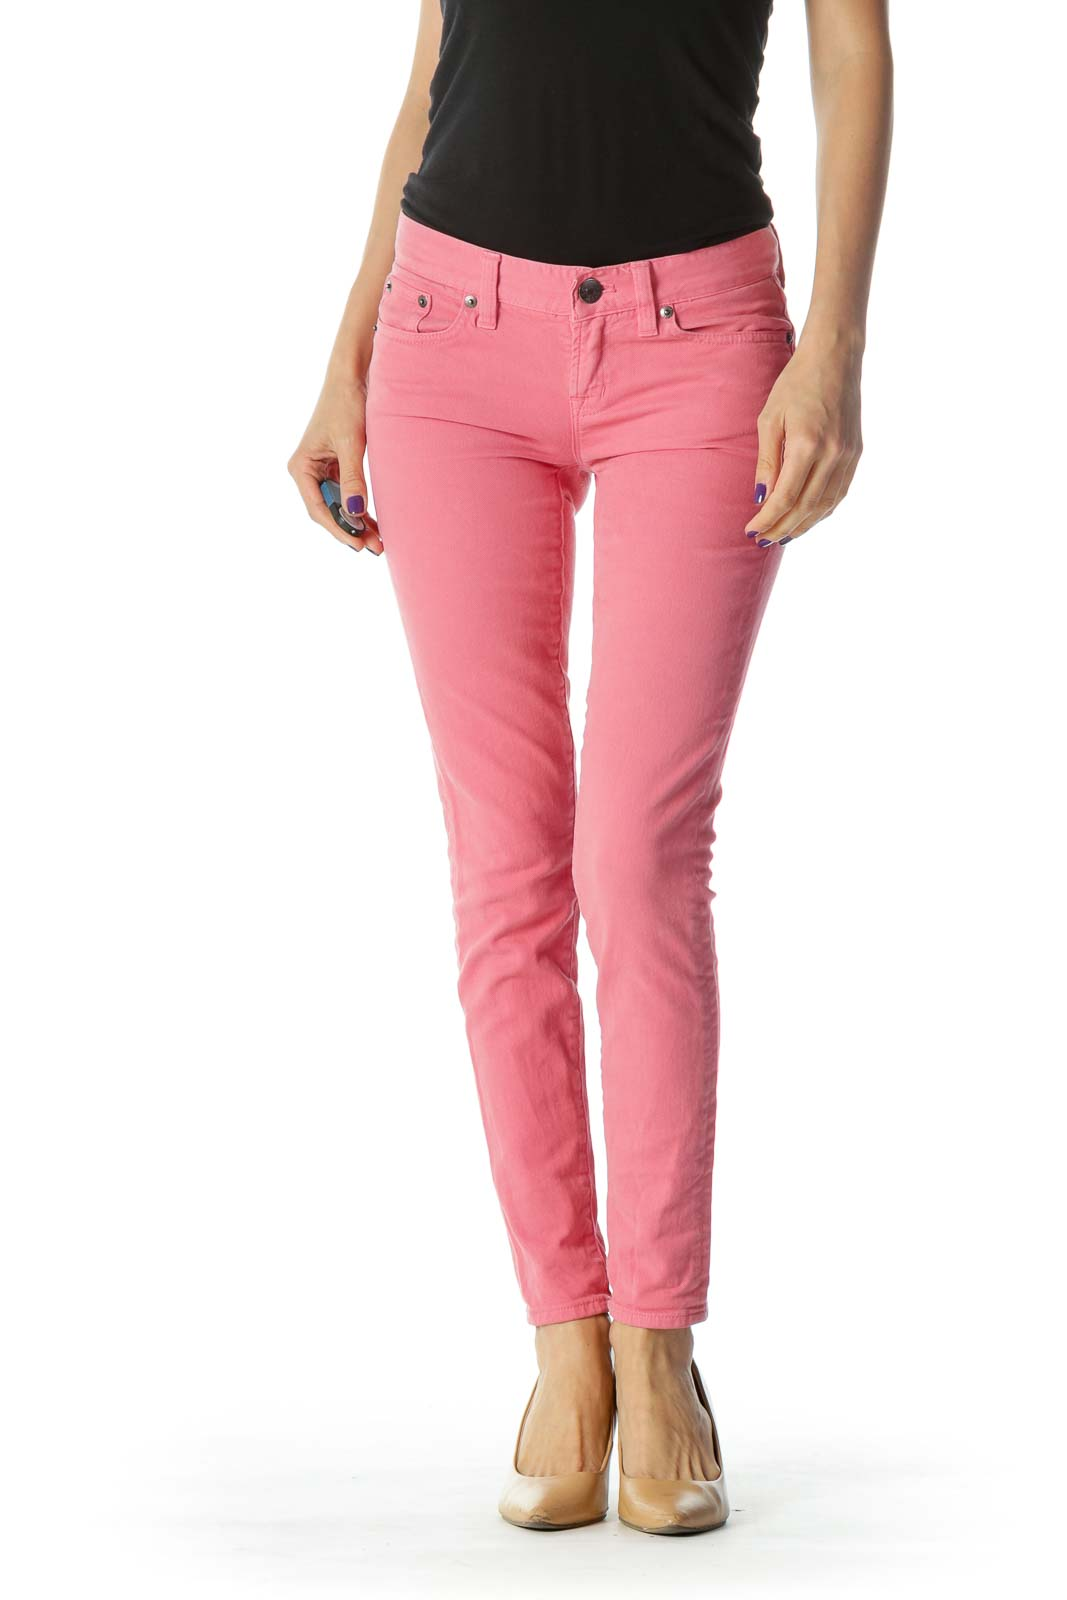 Pink Toothpick Low Rise Ankle Length Jeans